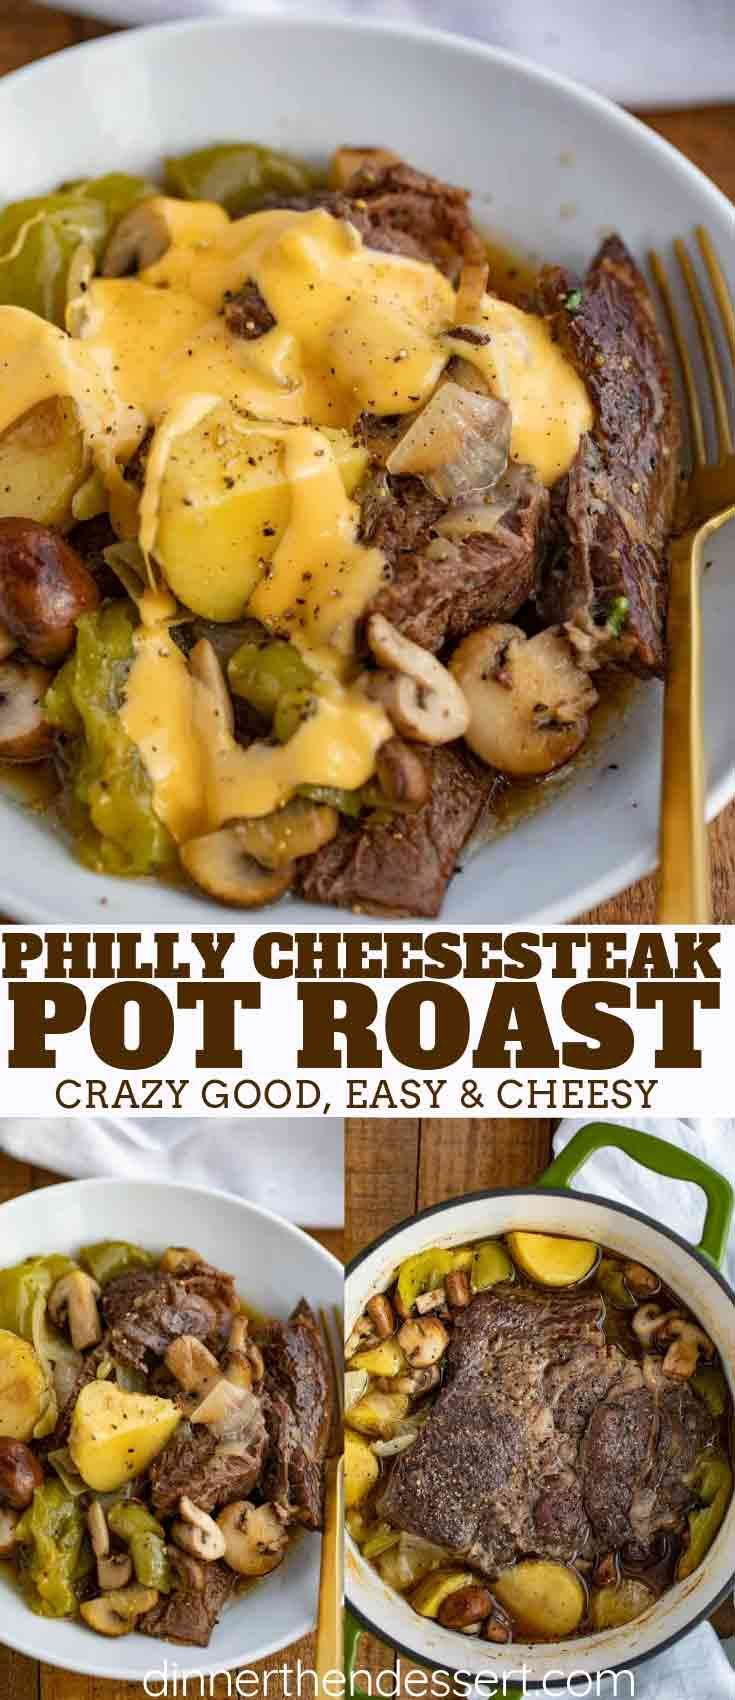 Philly Cheesesteak Pot Roast with the classic flavors of a Philly cheesesteak and the tender fall apart texture of a pot roast with buttery yukon potatoes and a rich beef gravy topped with a melted cheese sauce. Your new favorite pot roast. #phillycheesesteak #potroast #beef #dinner #onepot #cheese #cheesy #cheesesteak #dinnerthendessert #fallrecipesdinner